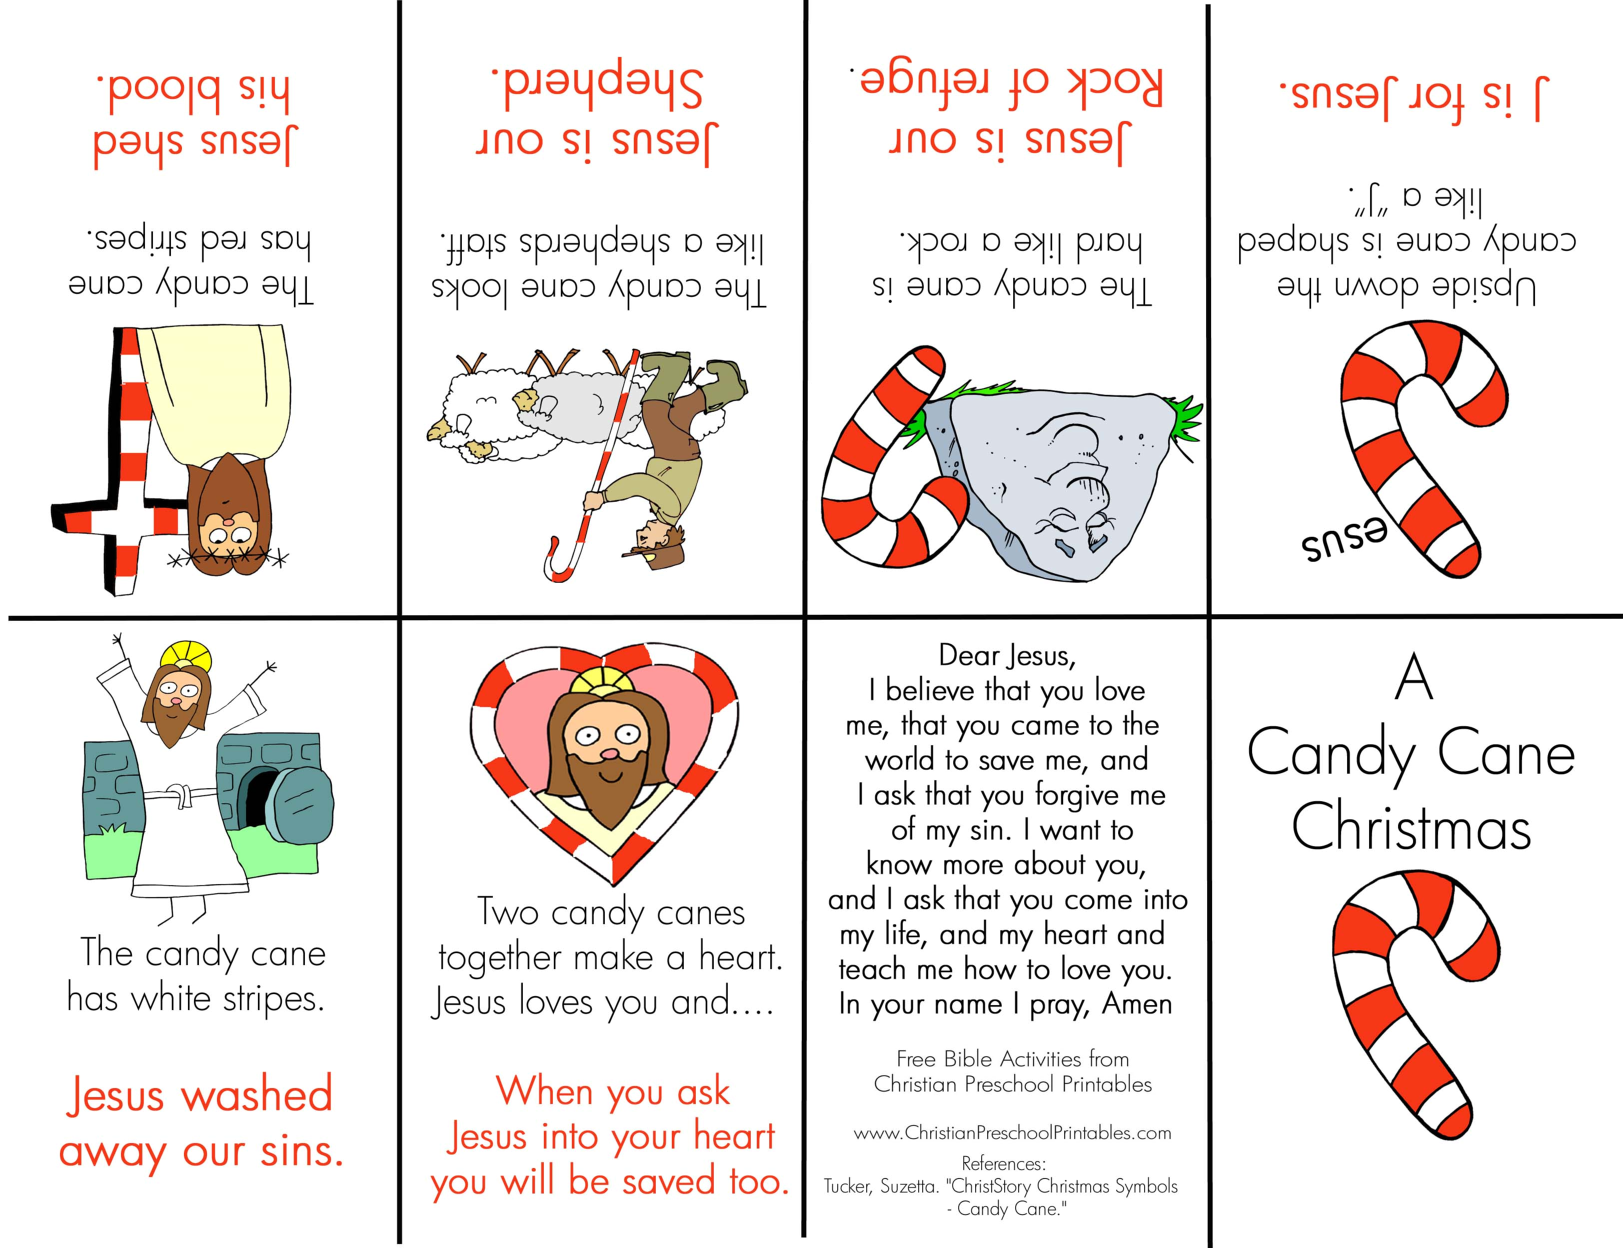 Candy Cane Mini Book Christian Preschool Printables